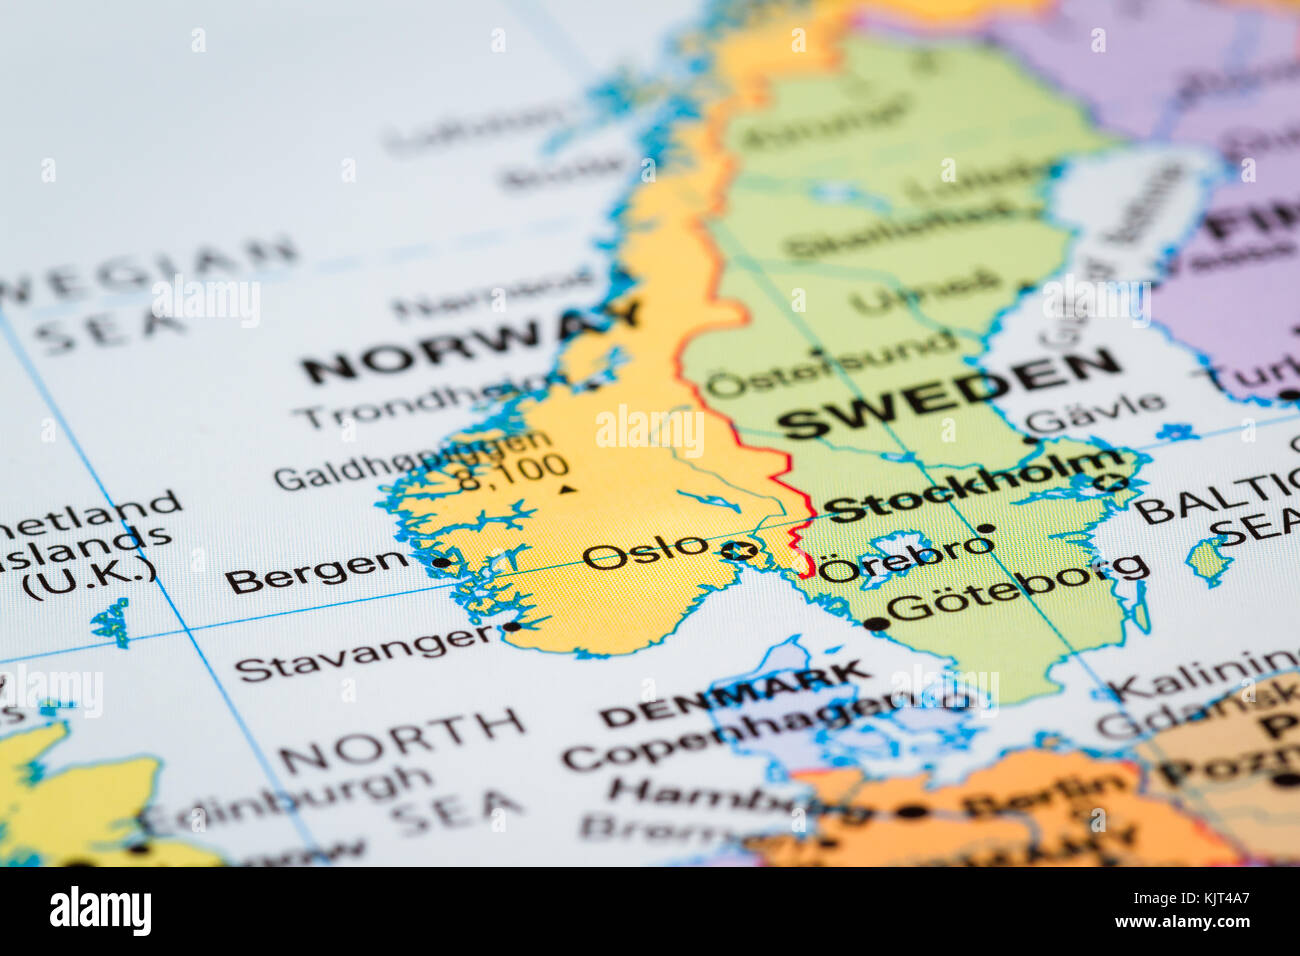 Scandinavia on a world map with oslo norway in focus stock photo scandinavia on a world map with oslo norway in focus gumiabroncs Images